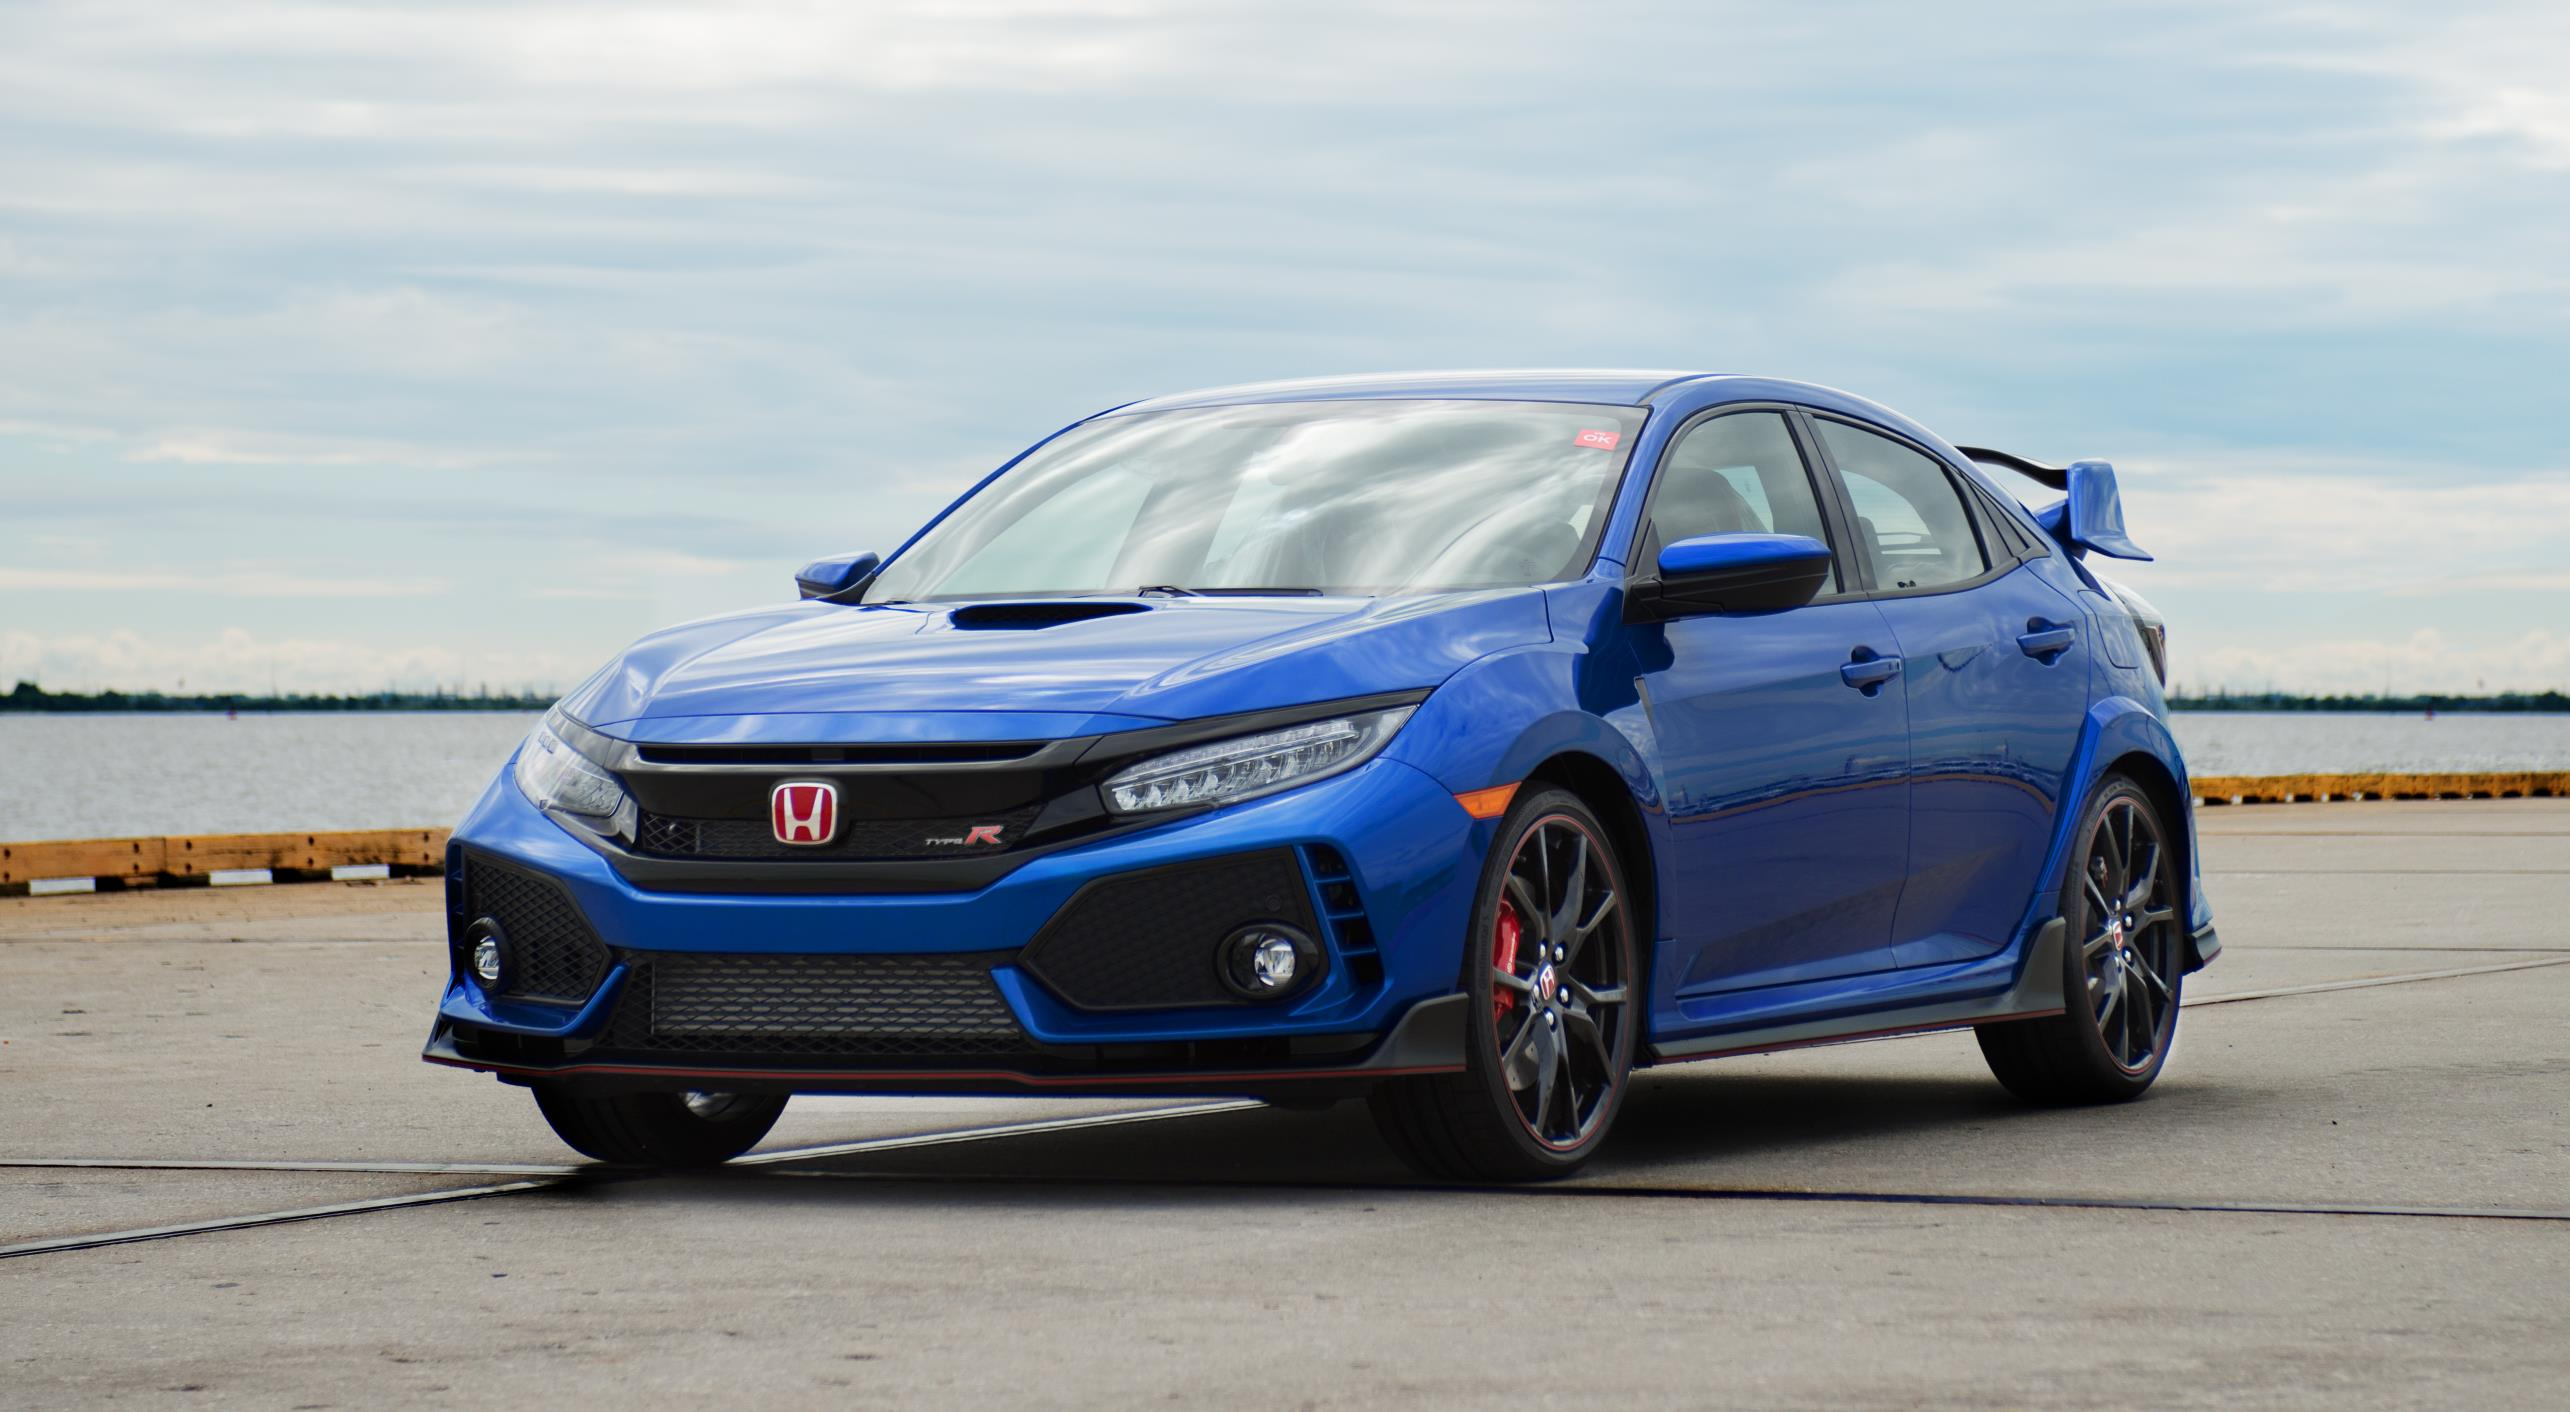 fk8 honda civic type r gets price bump for 2018 entry level trim is a no show autoevolution. Black Bedroom Furniture Sets. Home Design Ideas